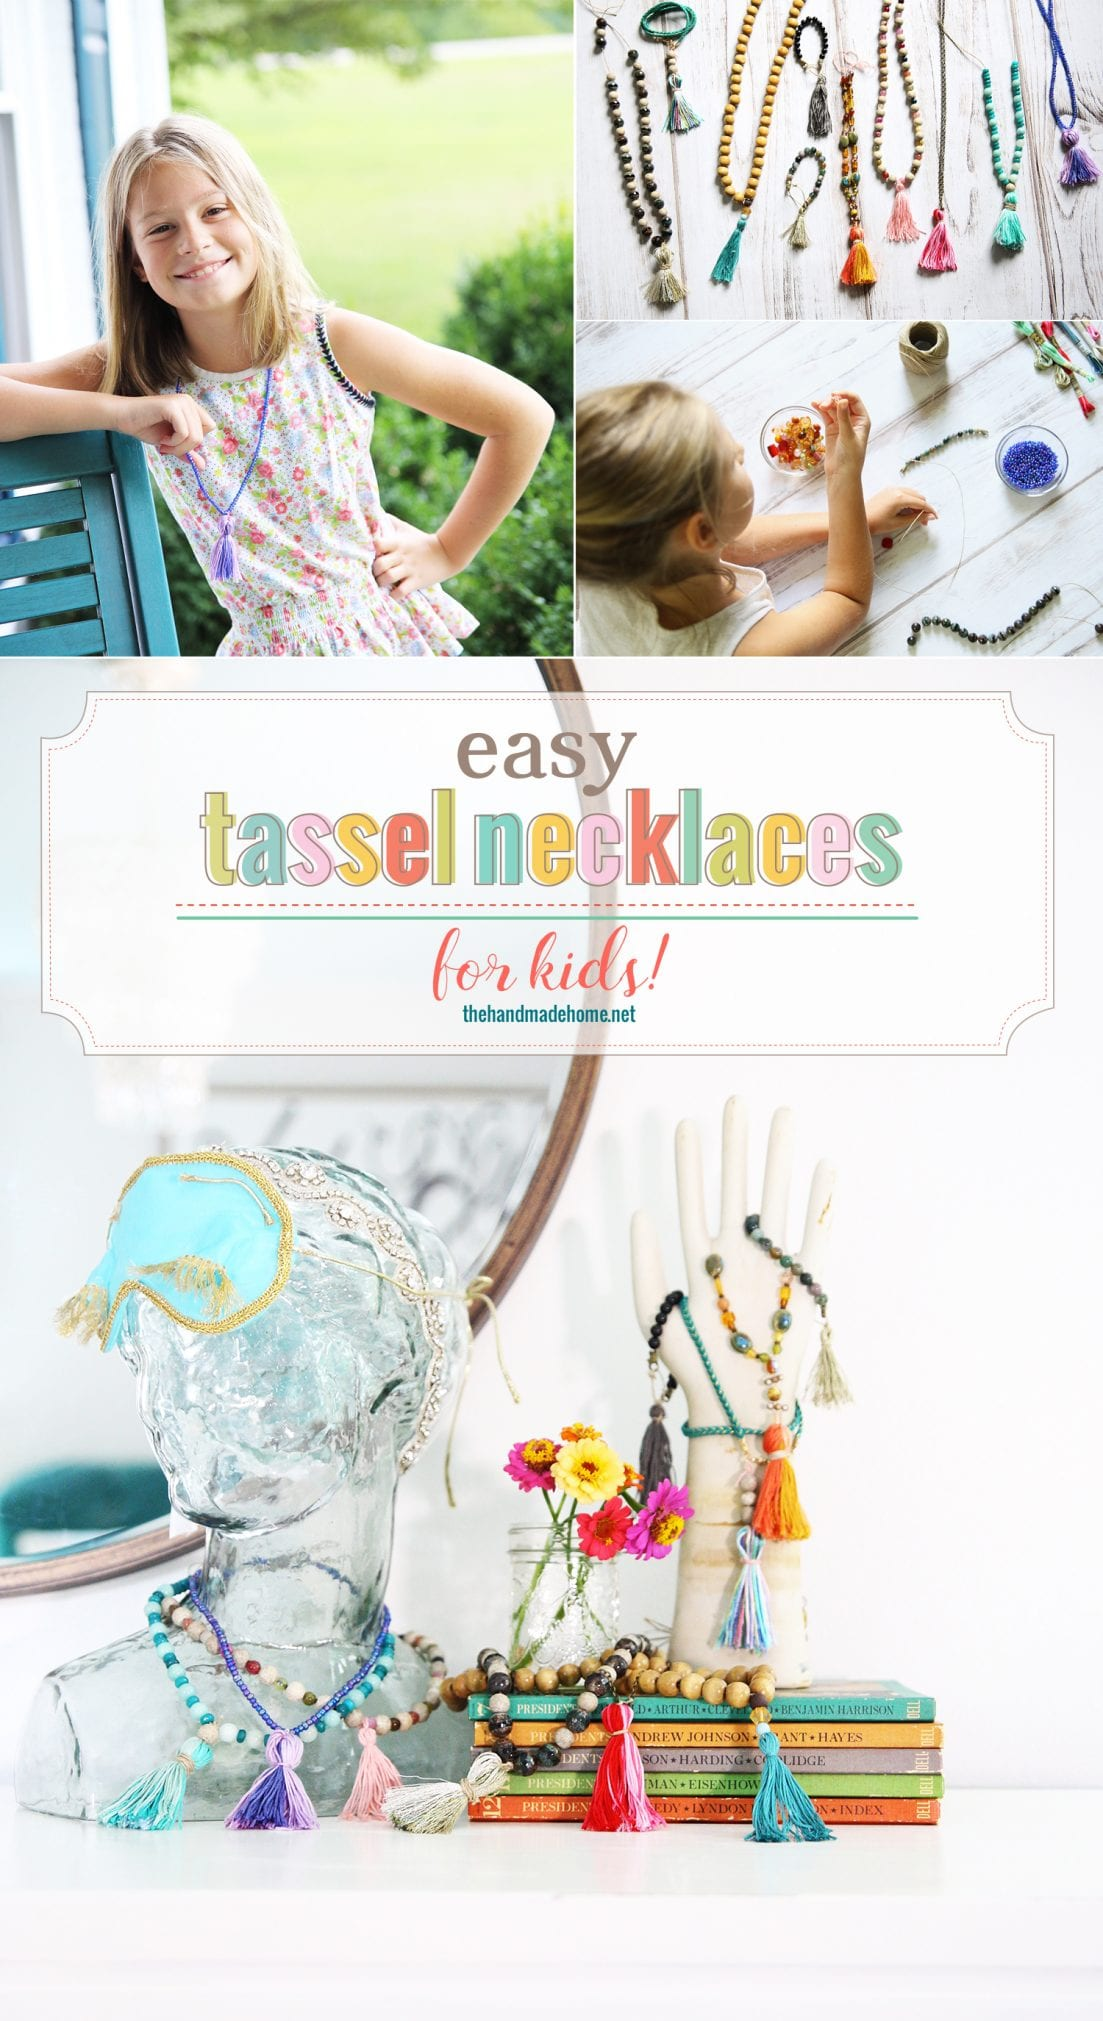 Easy Tassel Necklaces for Kids